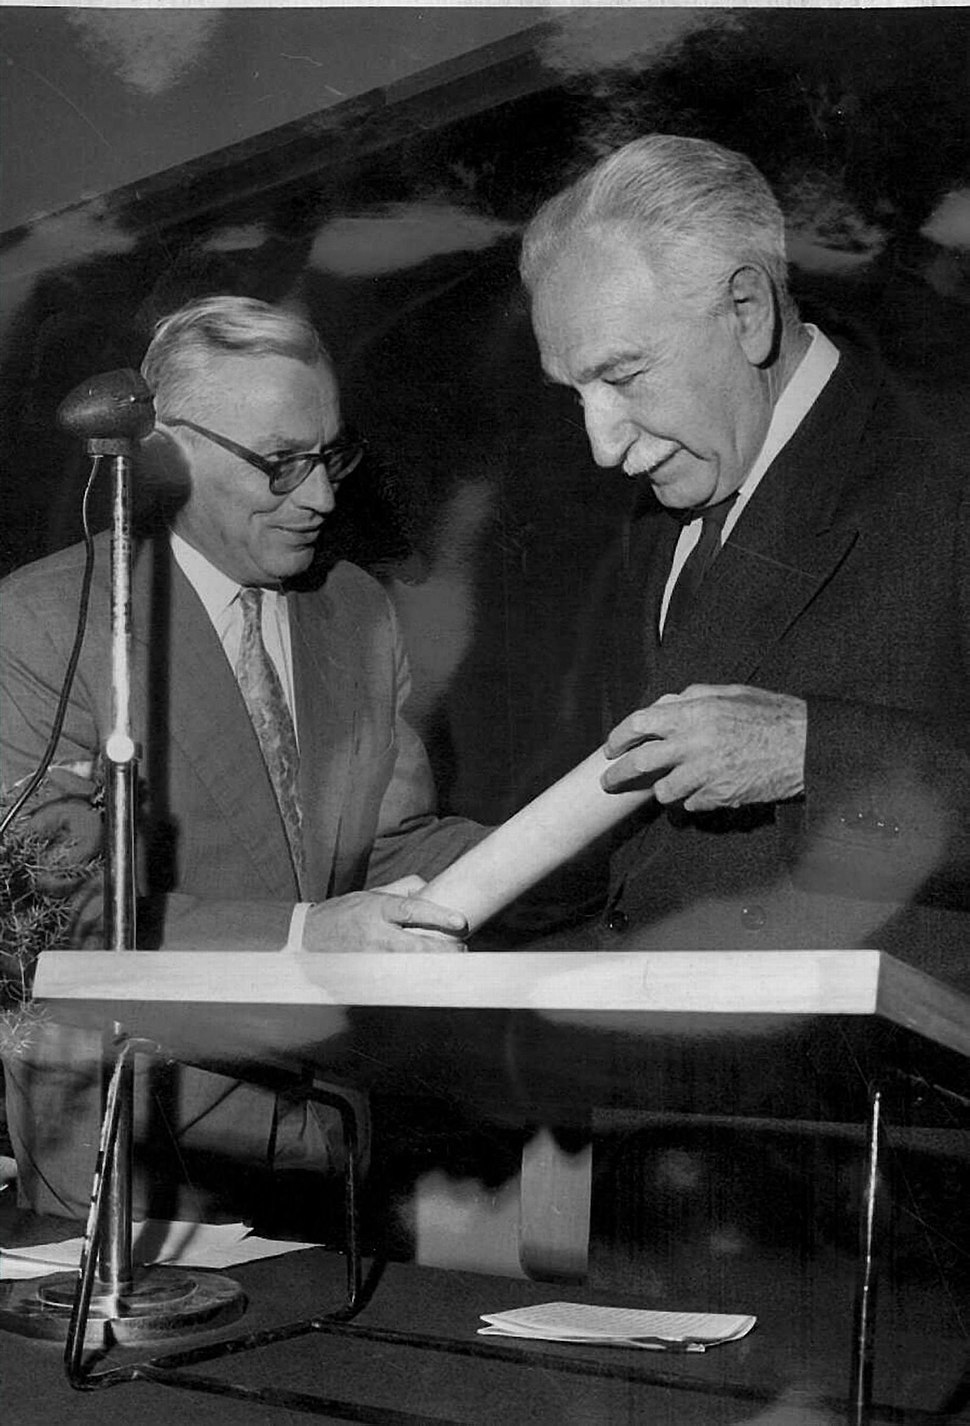 Hugo Bergman receives Honorary Doctorate from the Hebrew University of Jerusalem 1959 a